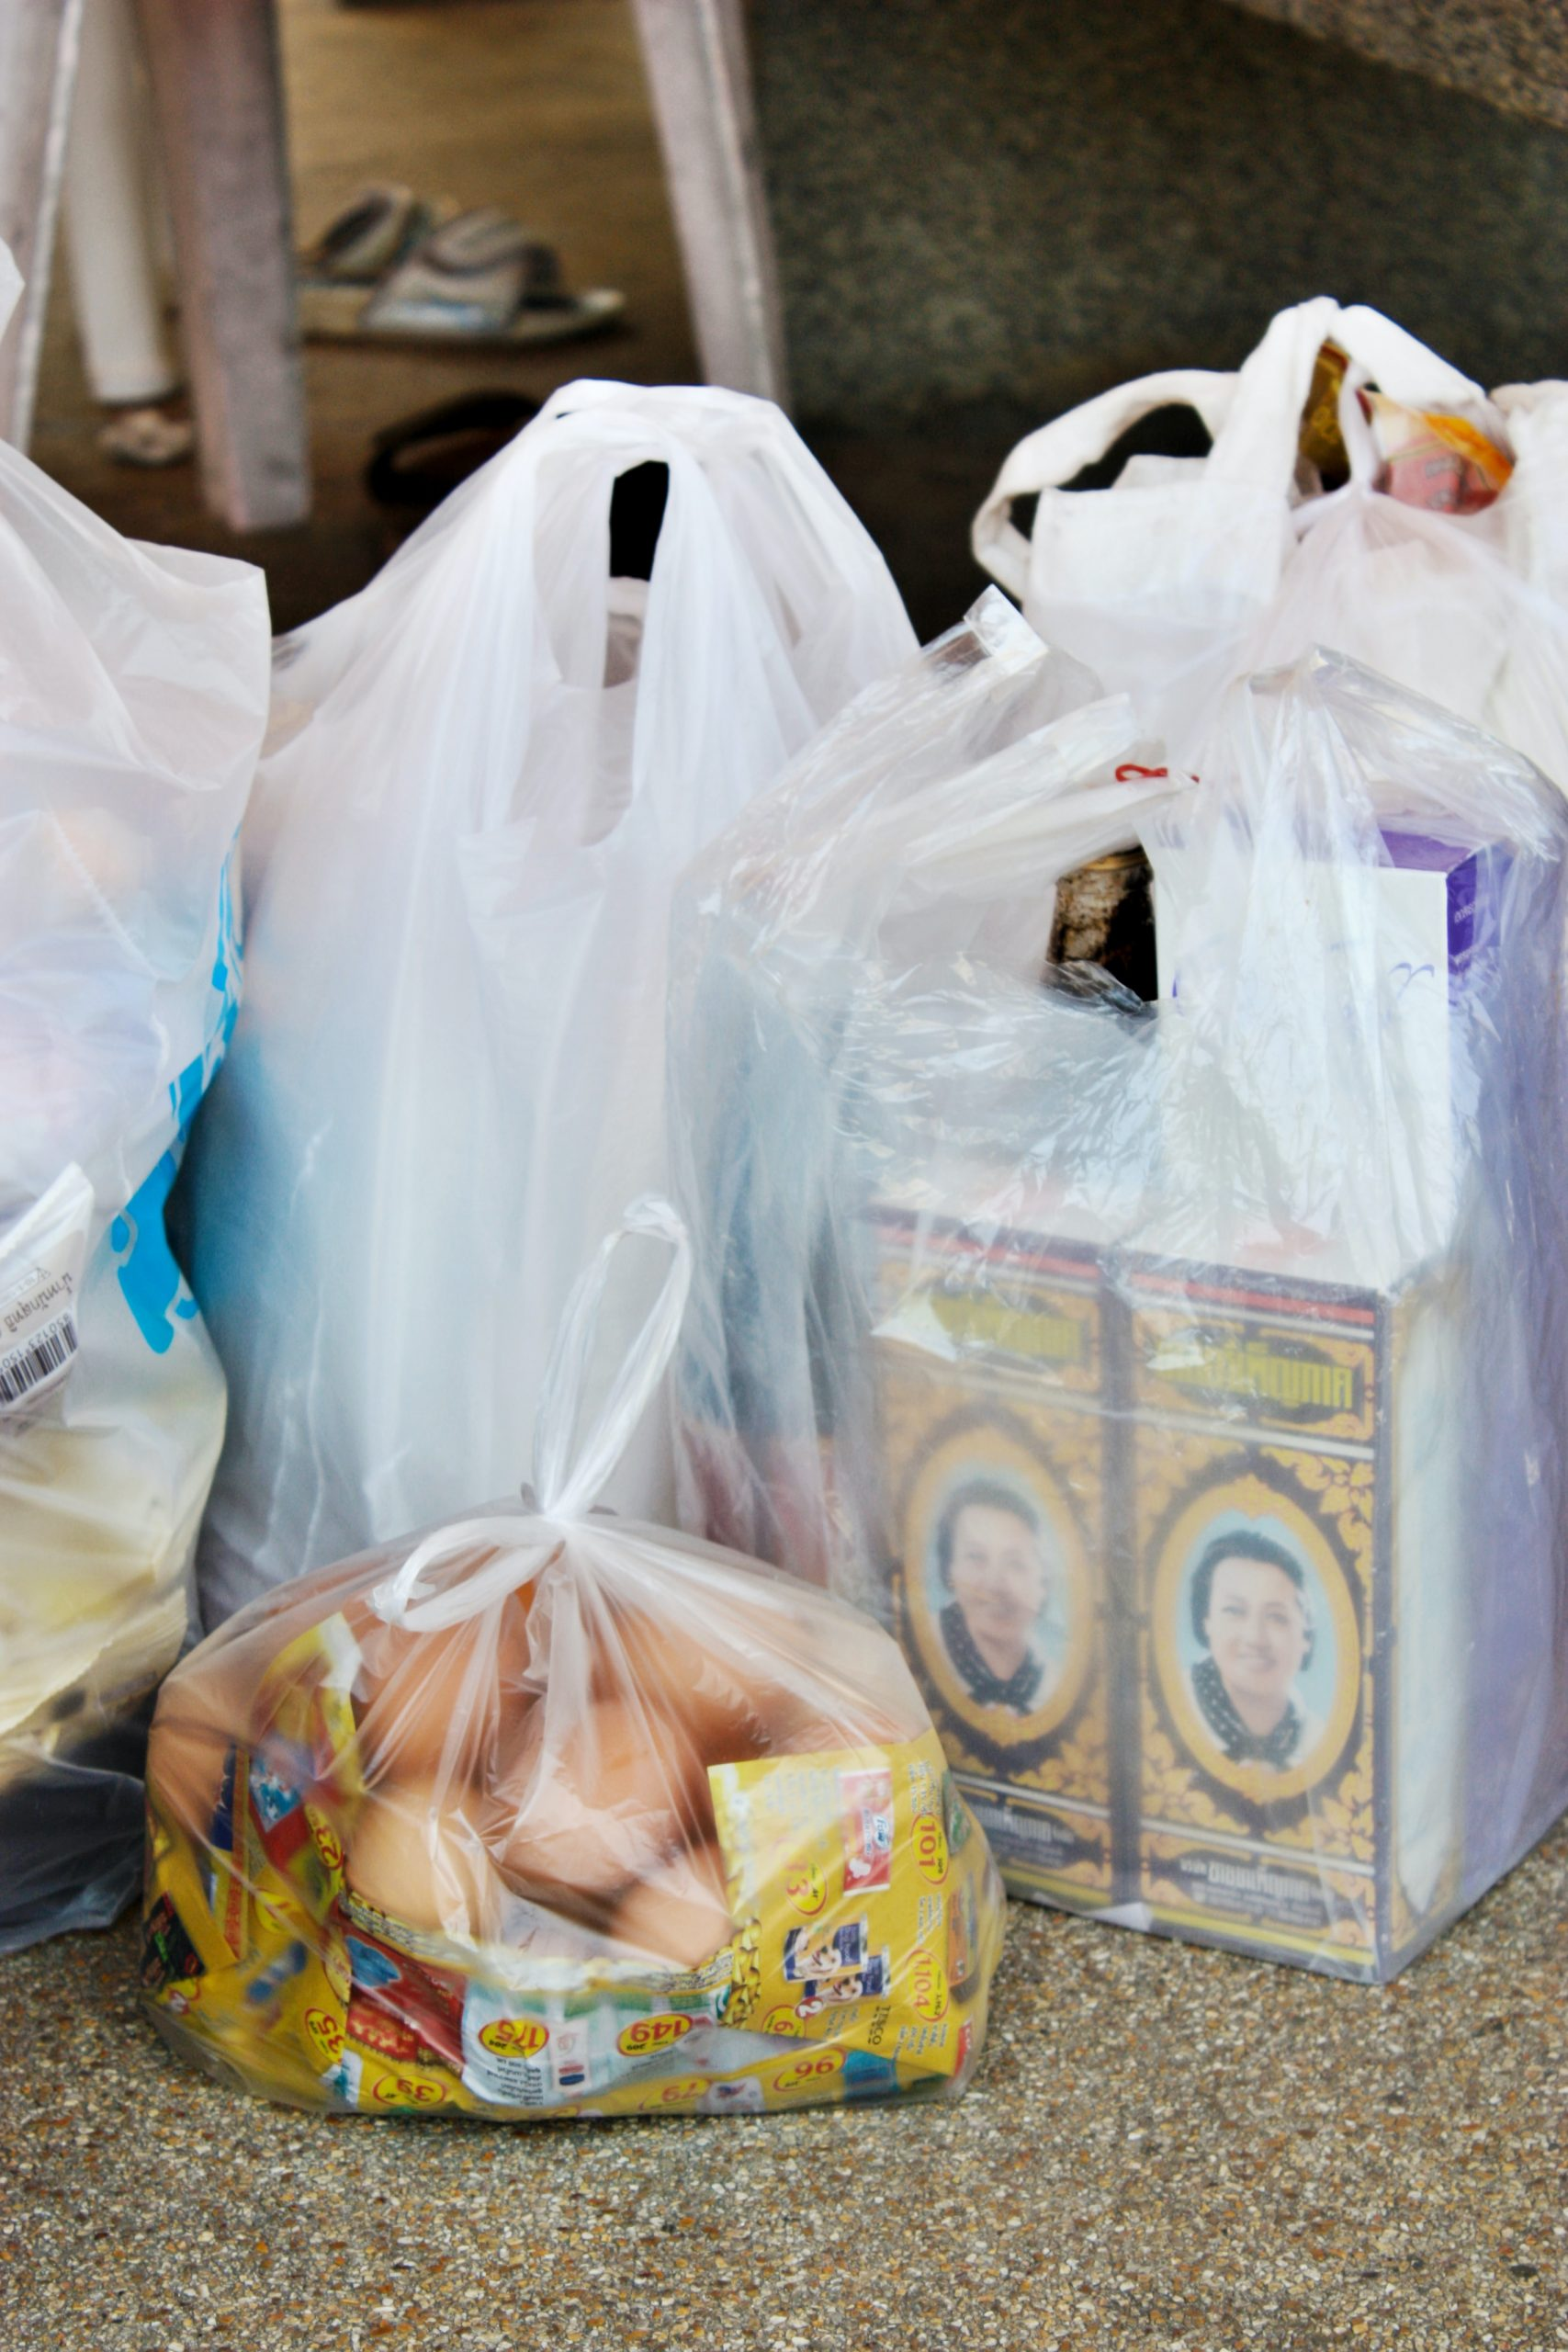 Plastic bag tax charge to be doubled and extended to all retailers